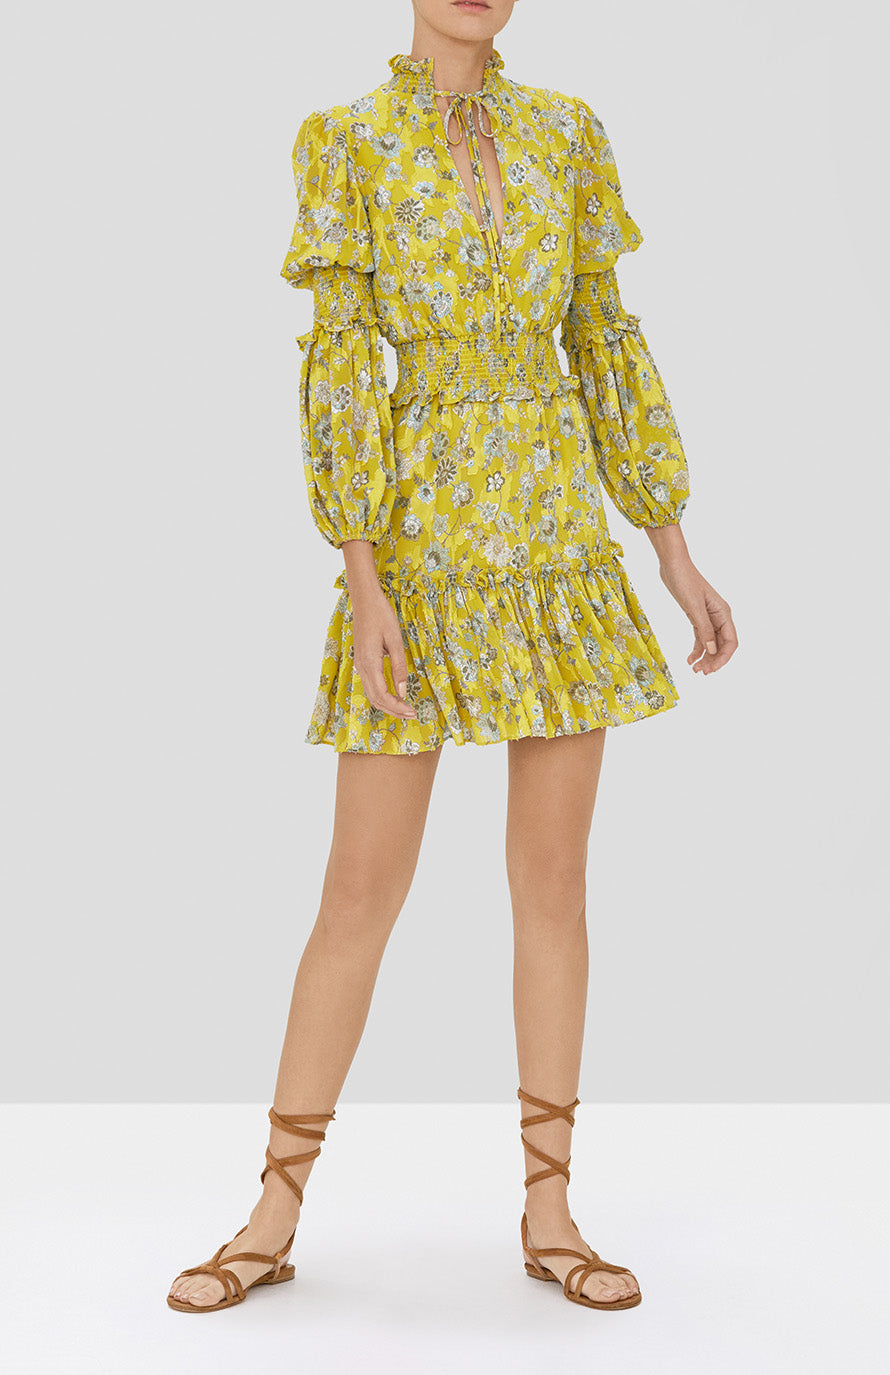 Alexis Rosewell Dress in Citron Floral from our Pre-Spring 2020 Ready To Wear Collection - Rear View